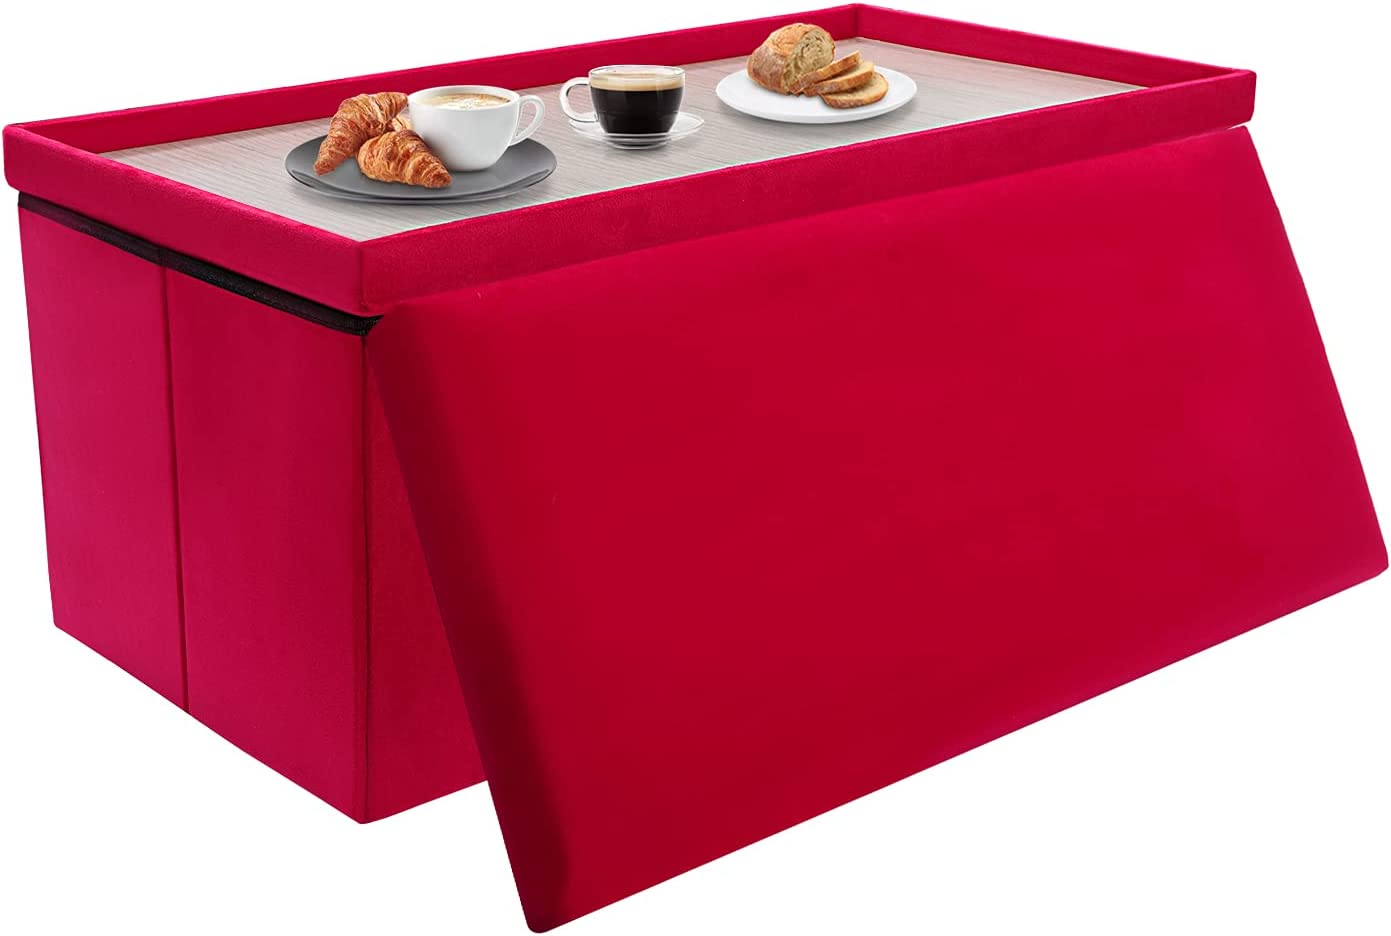 30 inches Folding Regular half store Storage Velvet RV Table Ottoman with Dr Coffee